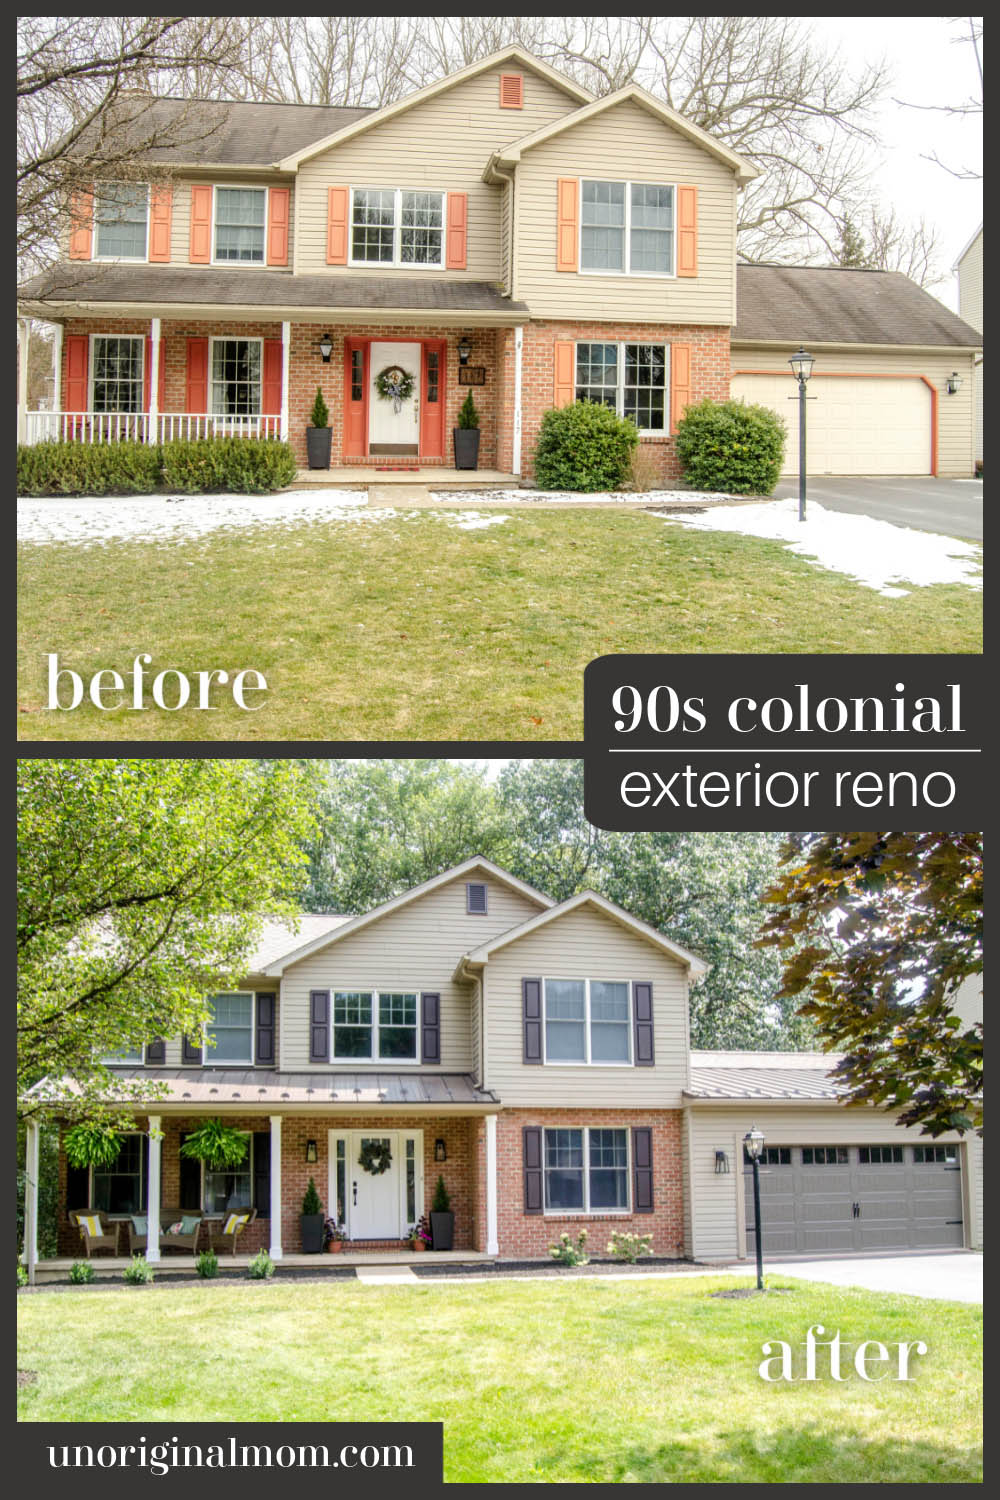 90s colonial exterior renovation before and after - garage extension with standing seam steel roof accents